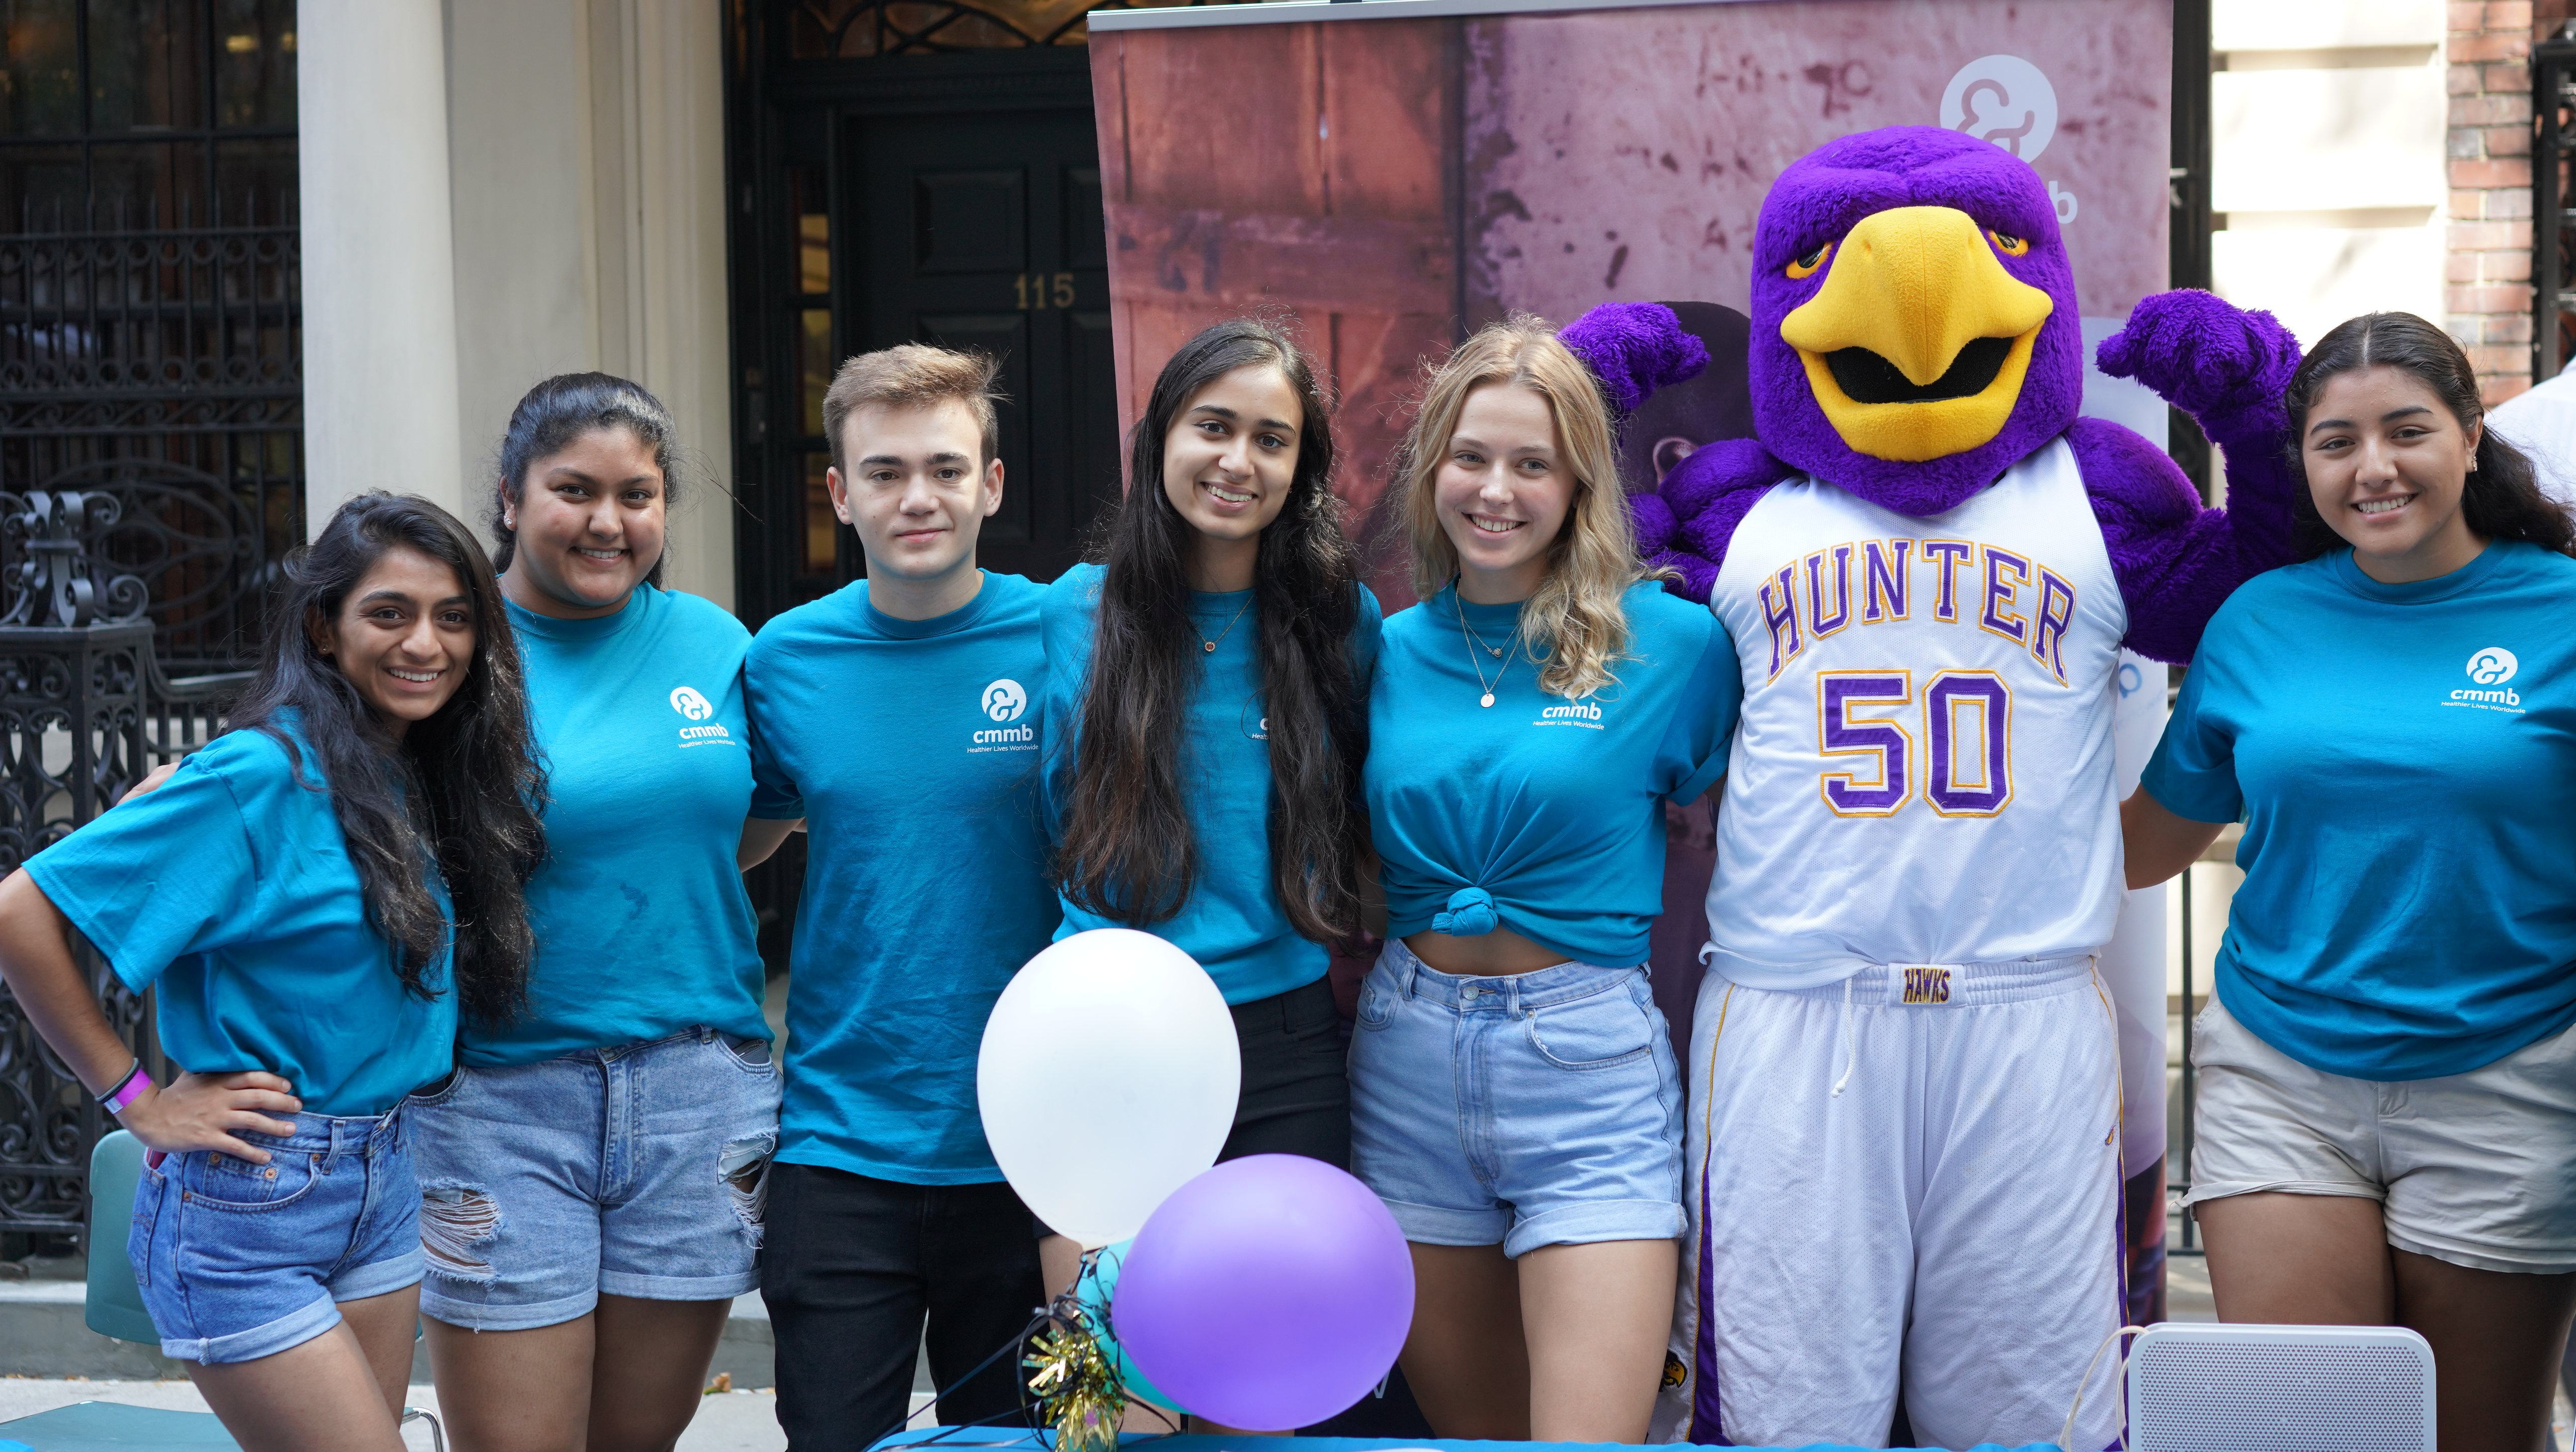 Hunter college students at club fair